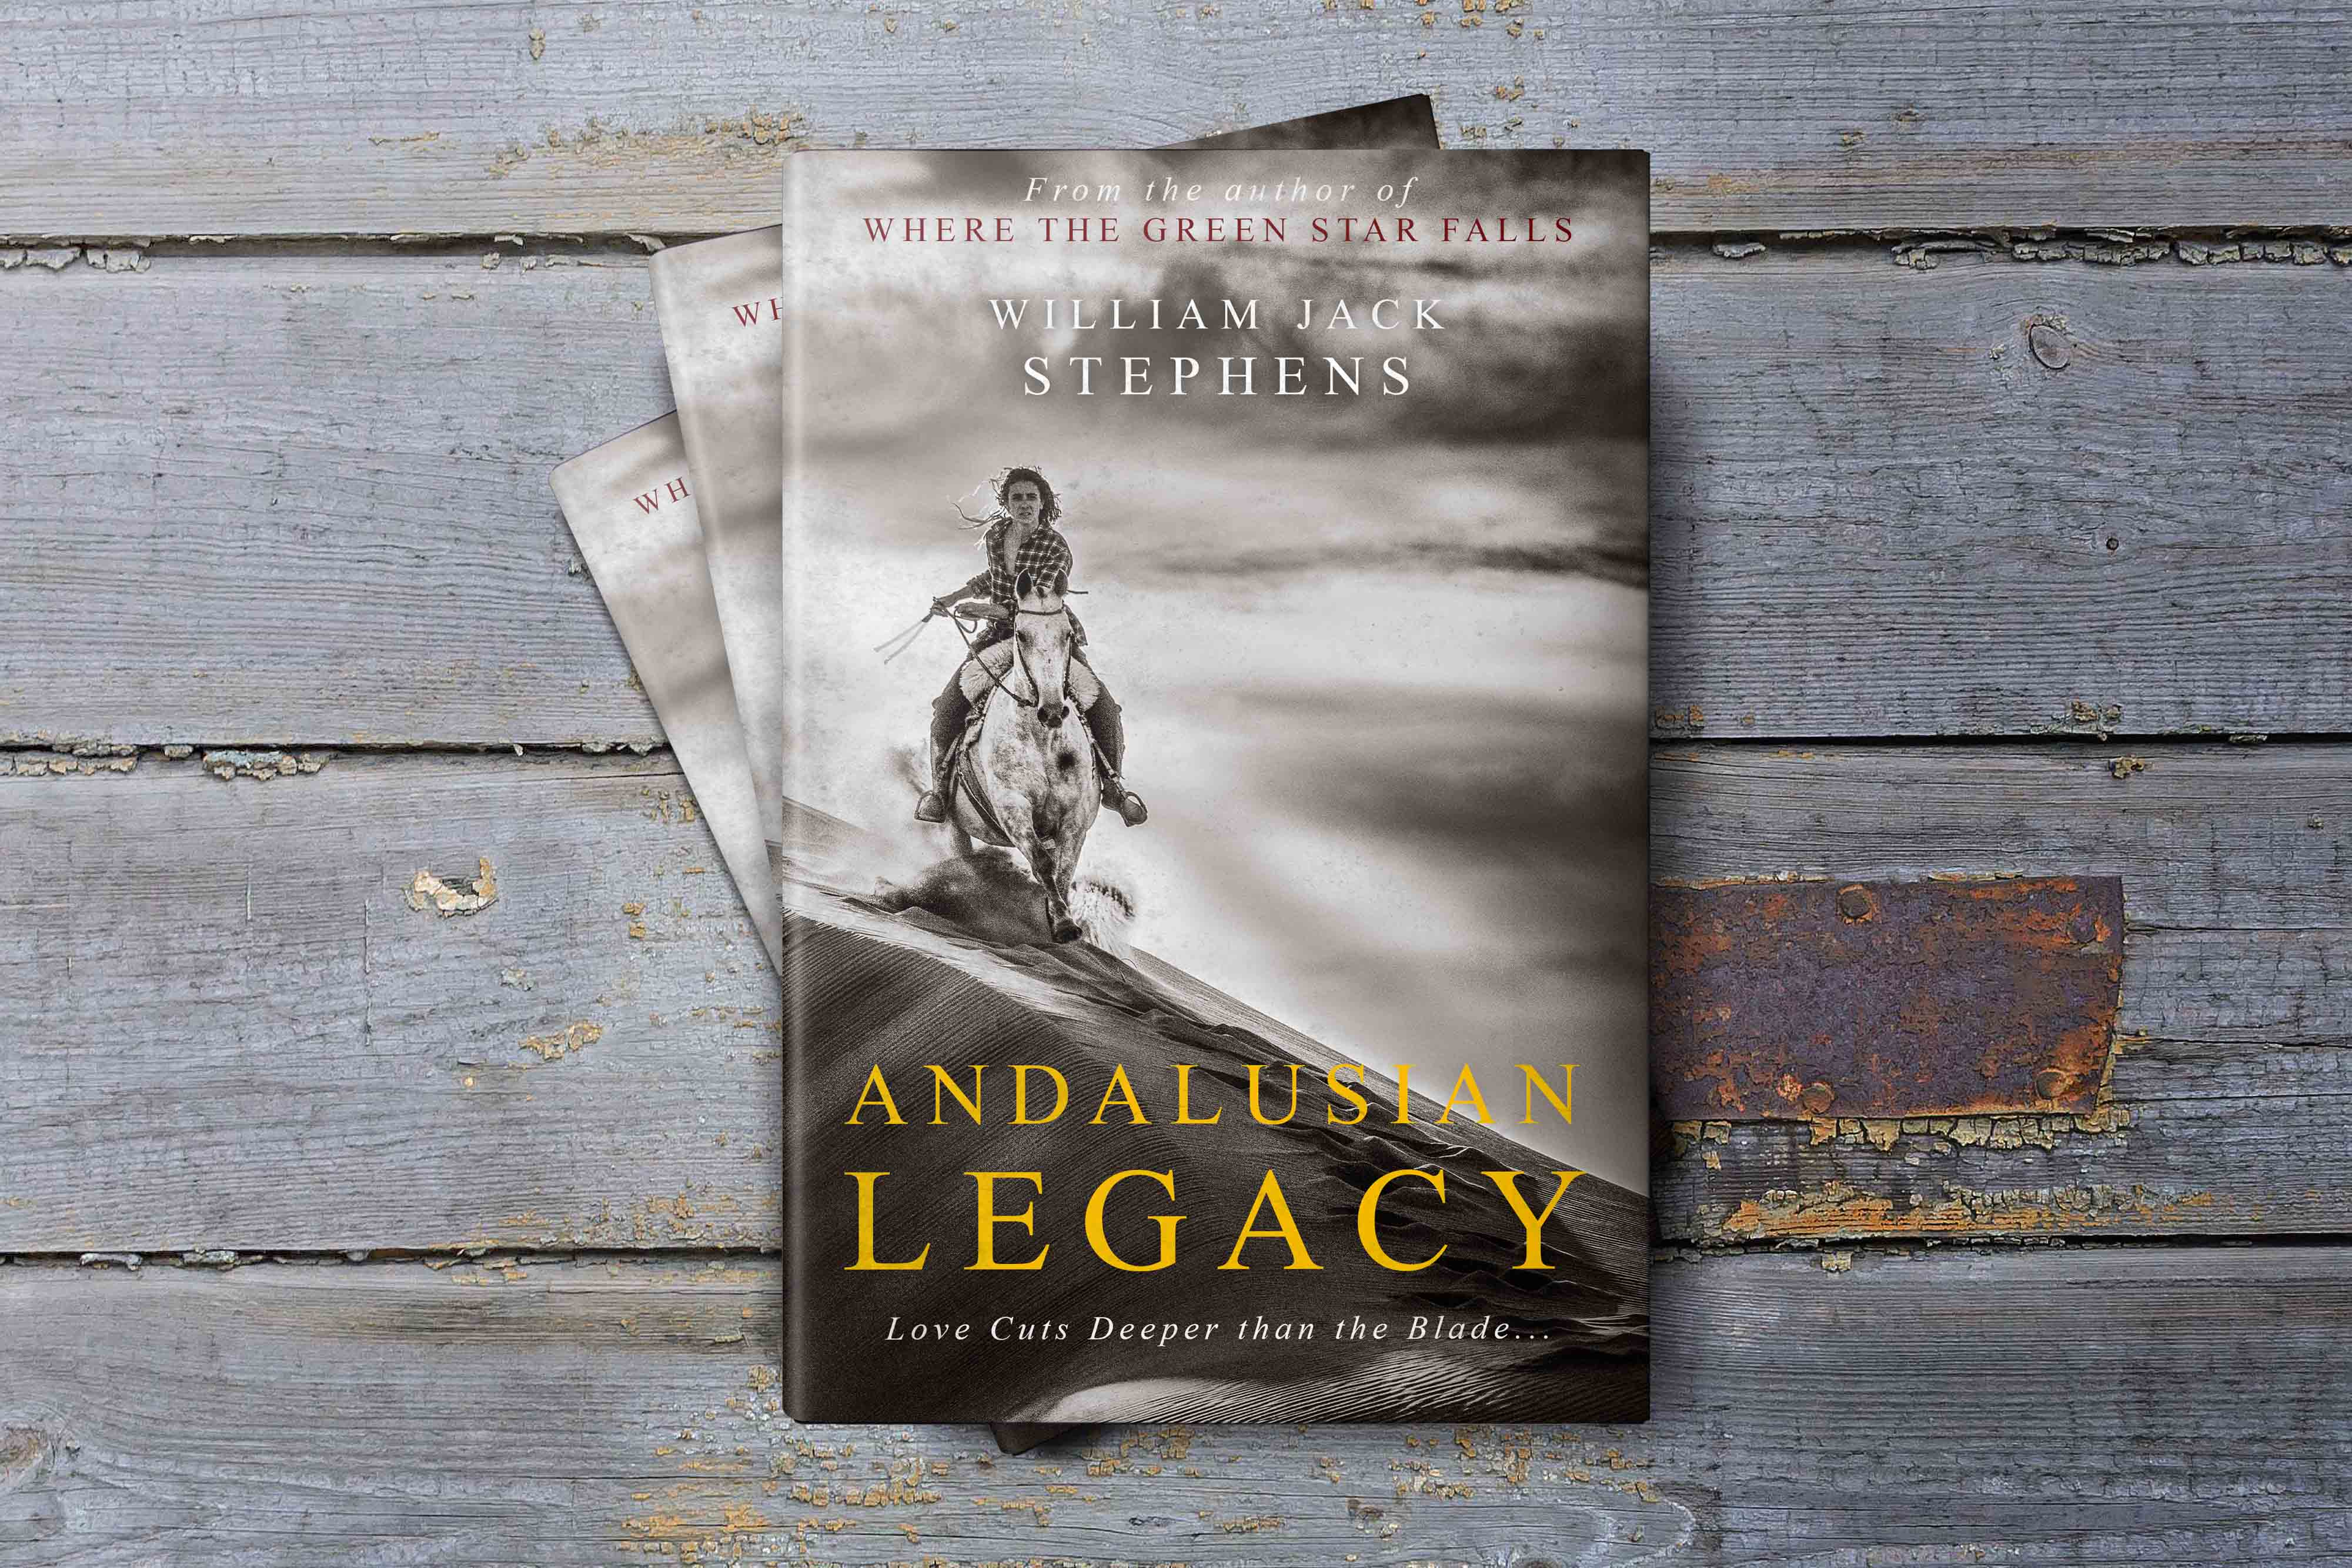 Andalusian Legacy